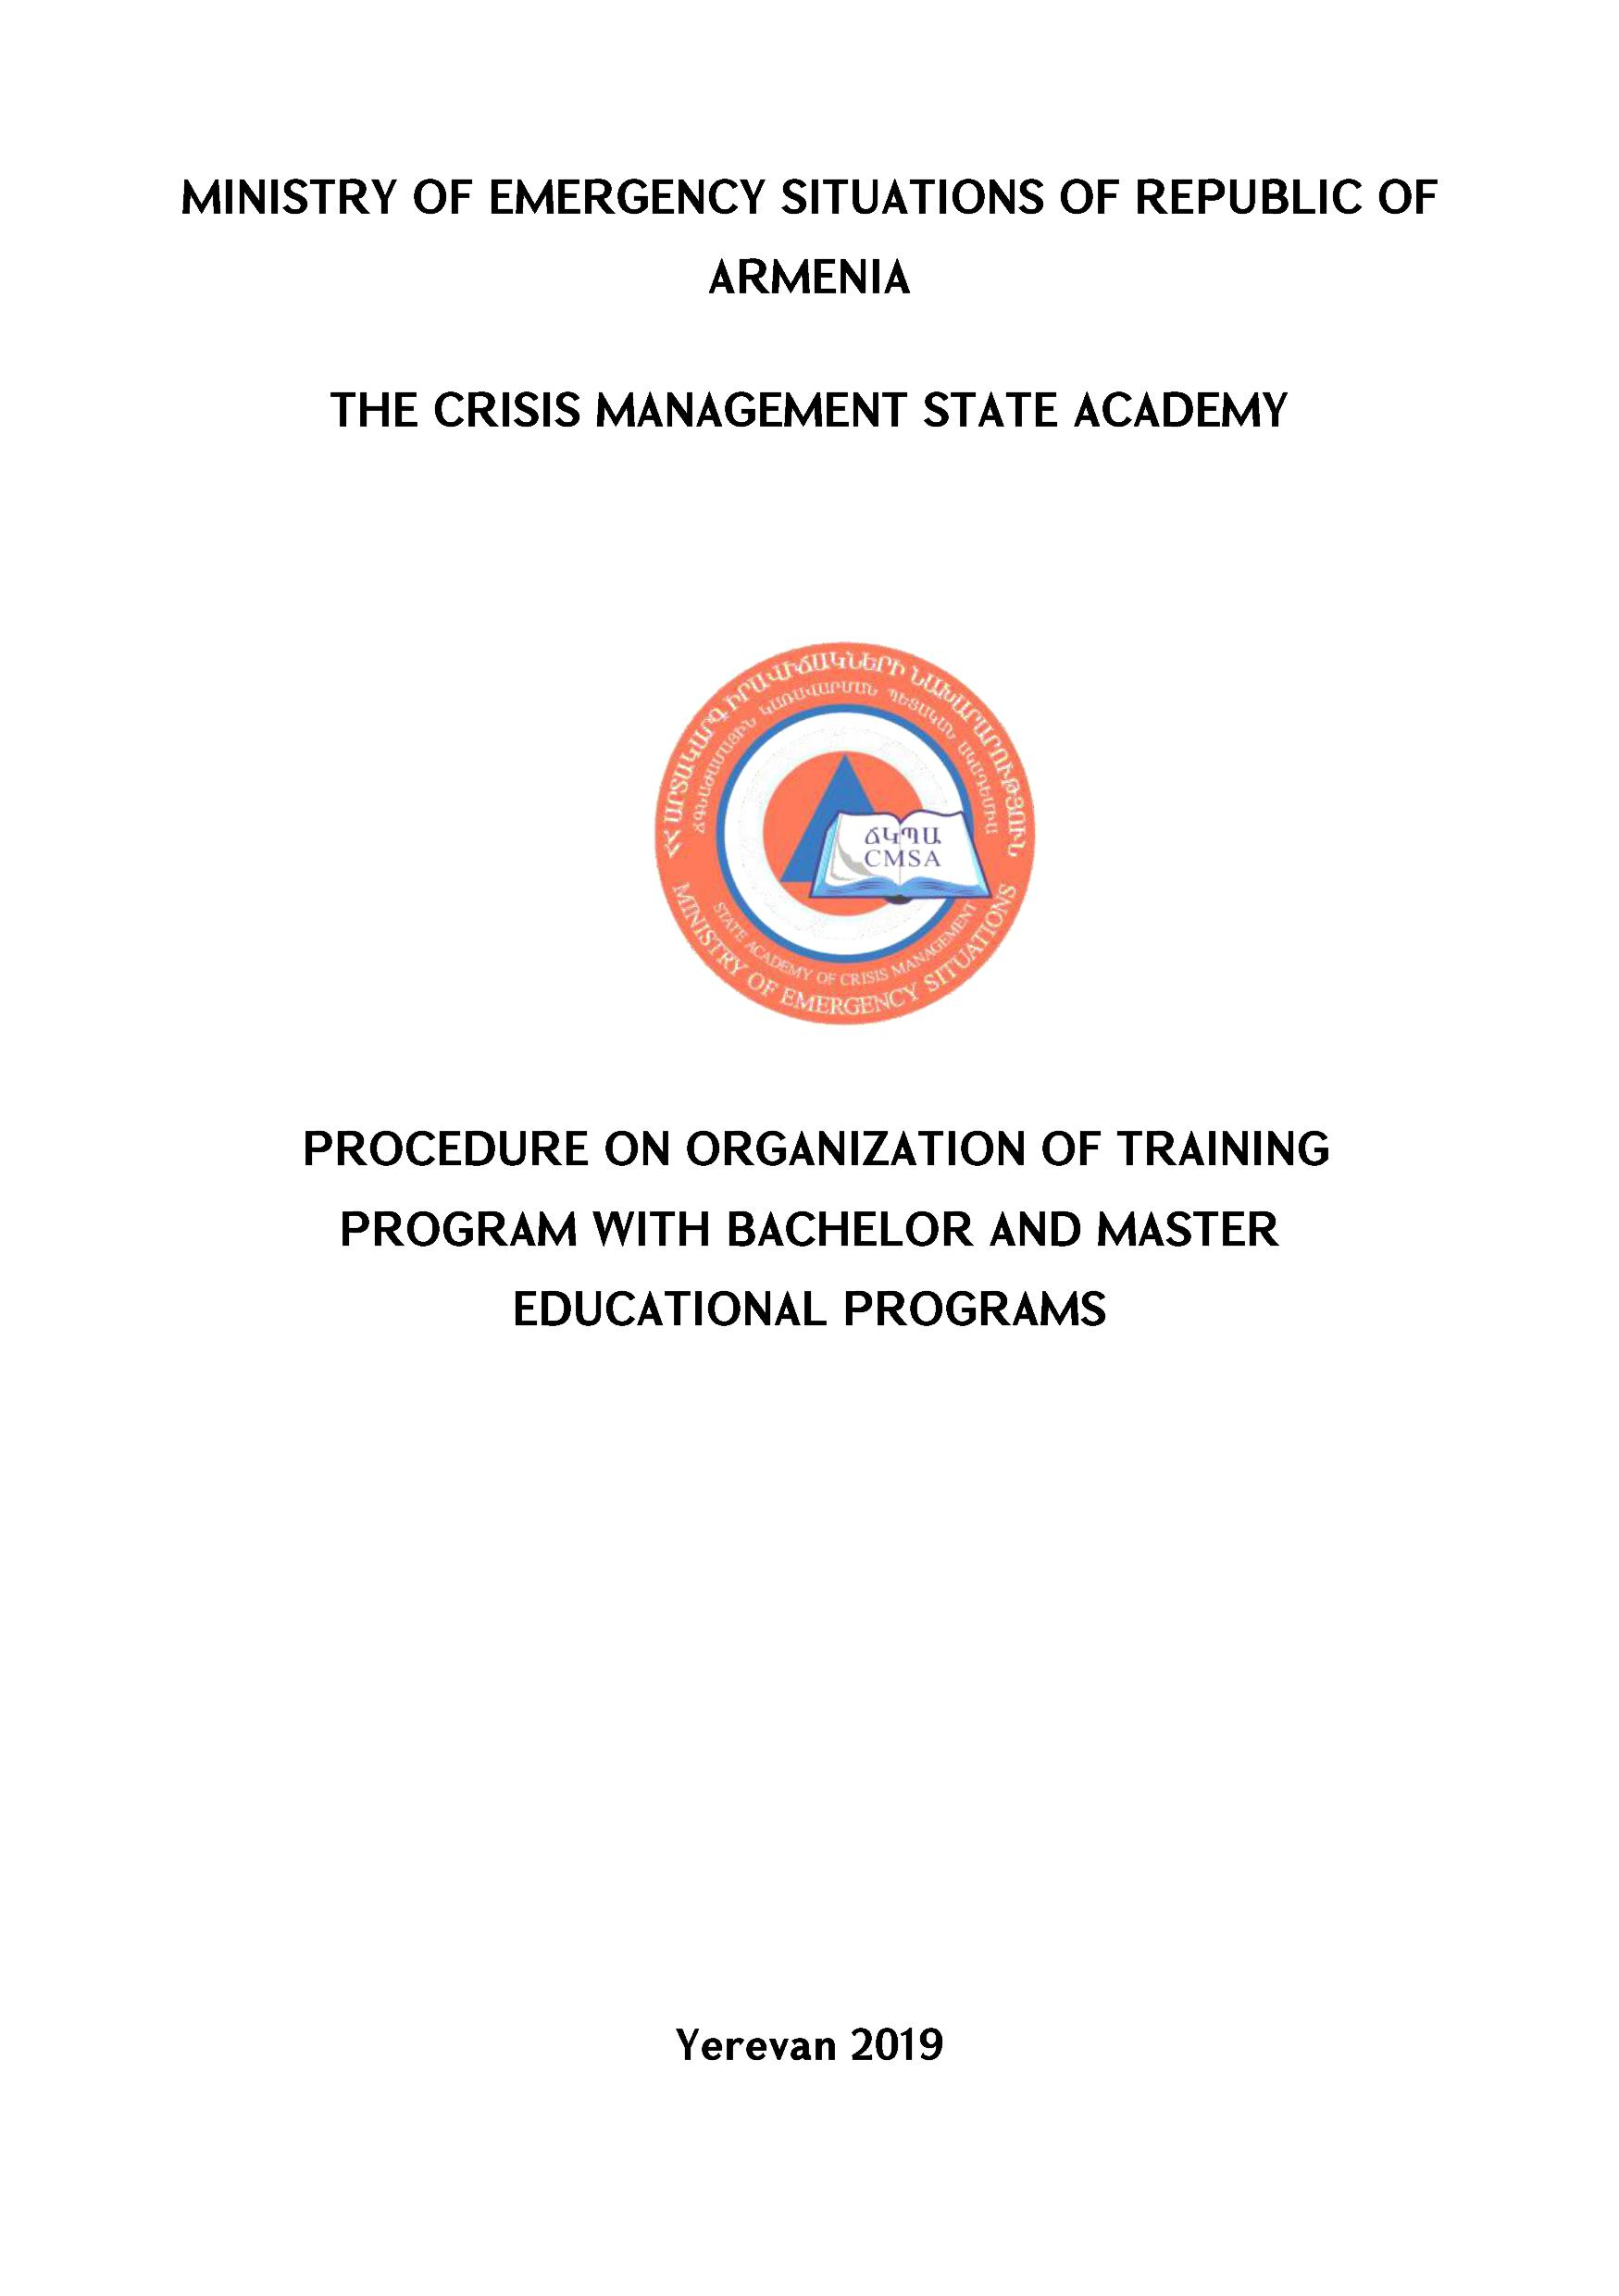 PROCEDURE ON ORGANIZATION OF TRAINING PROGRAM WITH BACHELOR AND MASTER EDUCATIONAL PROGRAMS